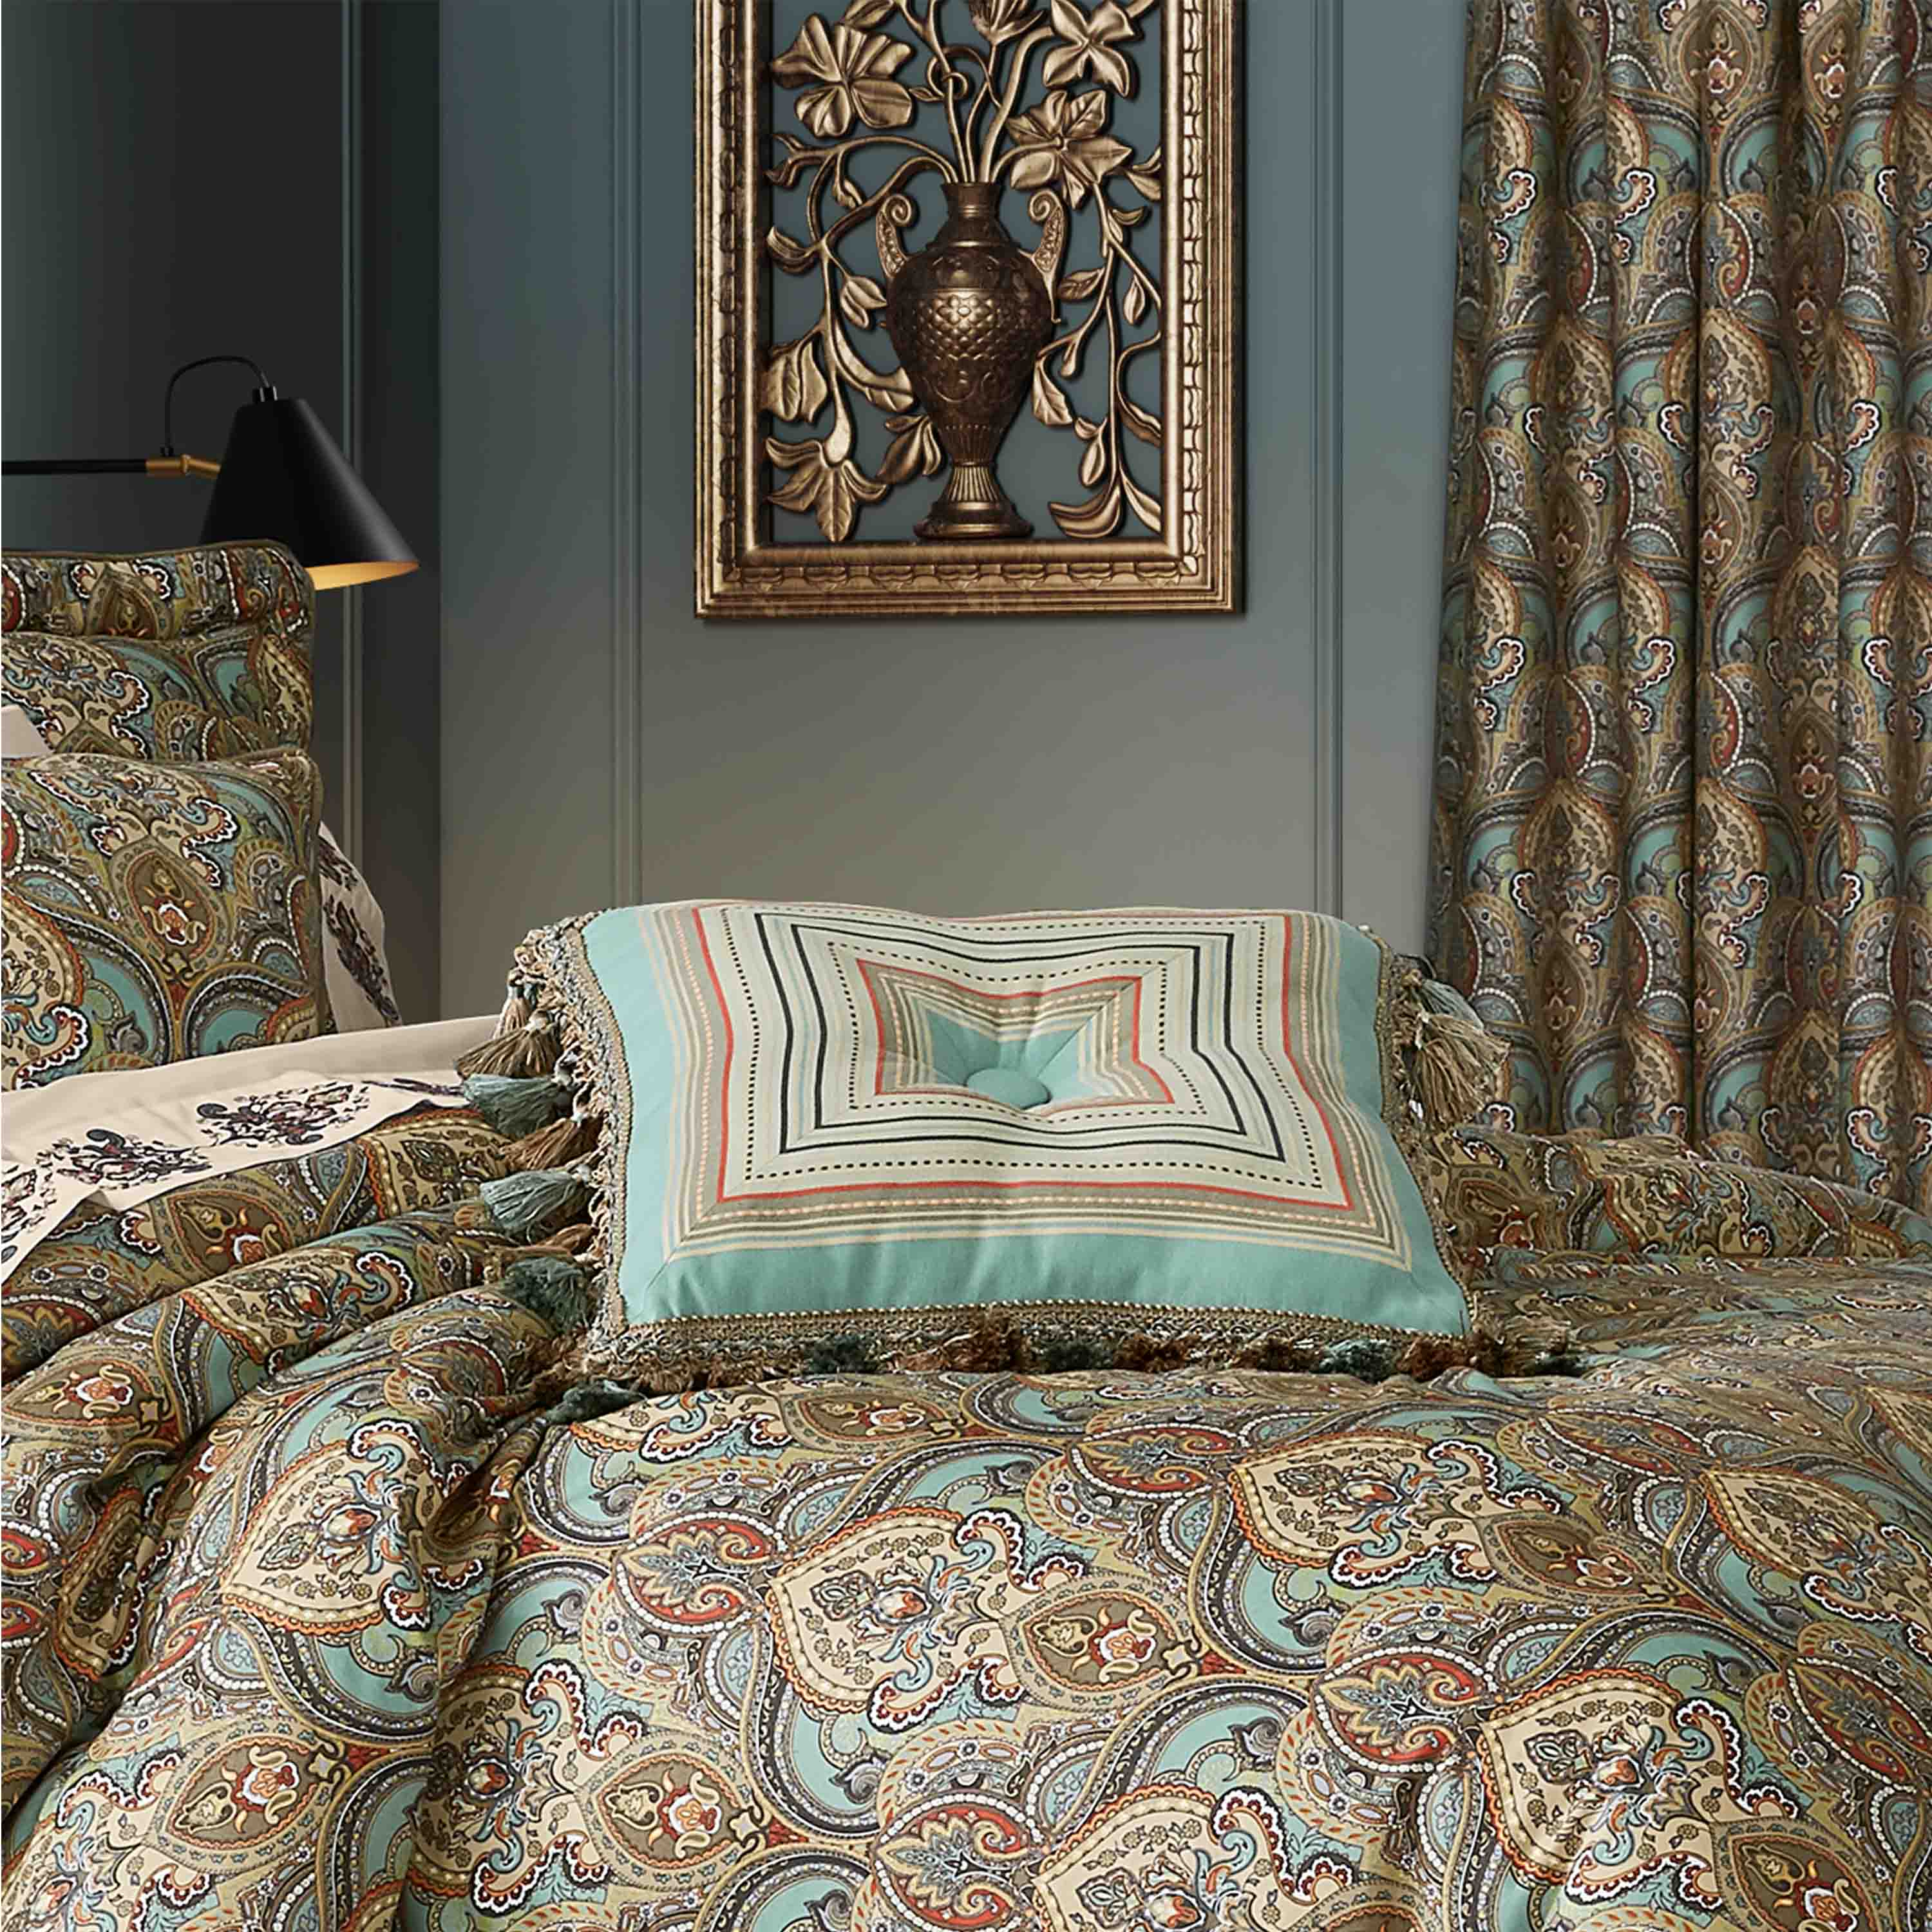 "Victoria Turquoise Square Decorative Throw Pillow 18""W x 18""L"" [Luxury comforter Sets] [by Latest Bedding]"